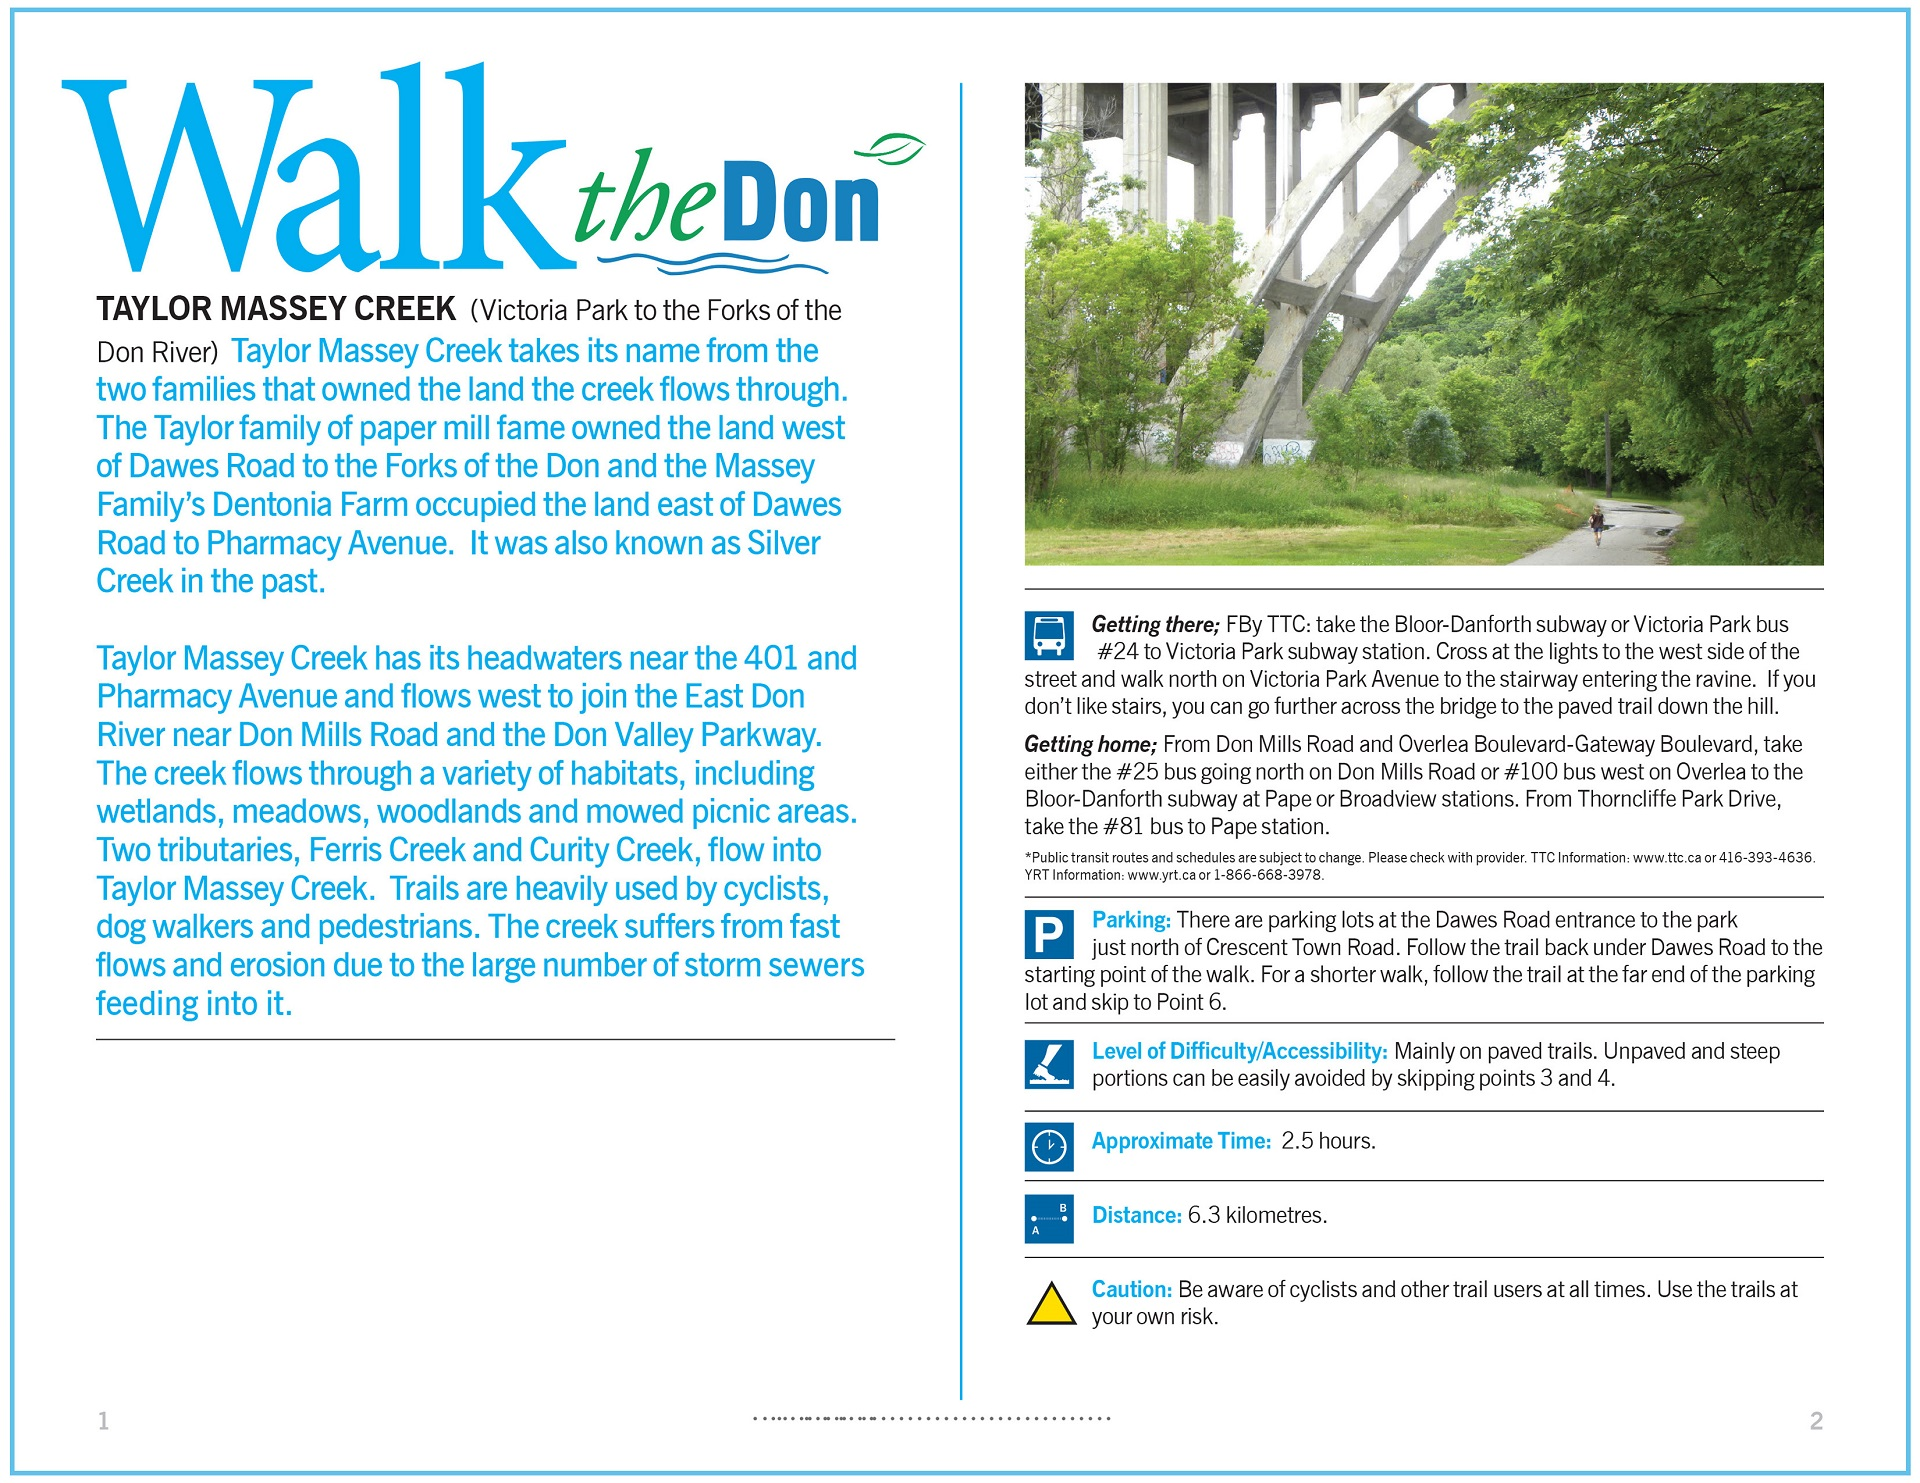 Walk the Don -Taylor Massey Creek Trail Guide